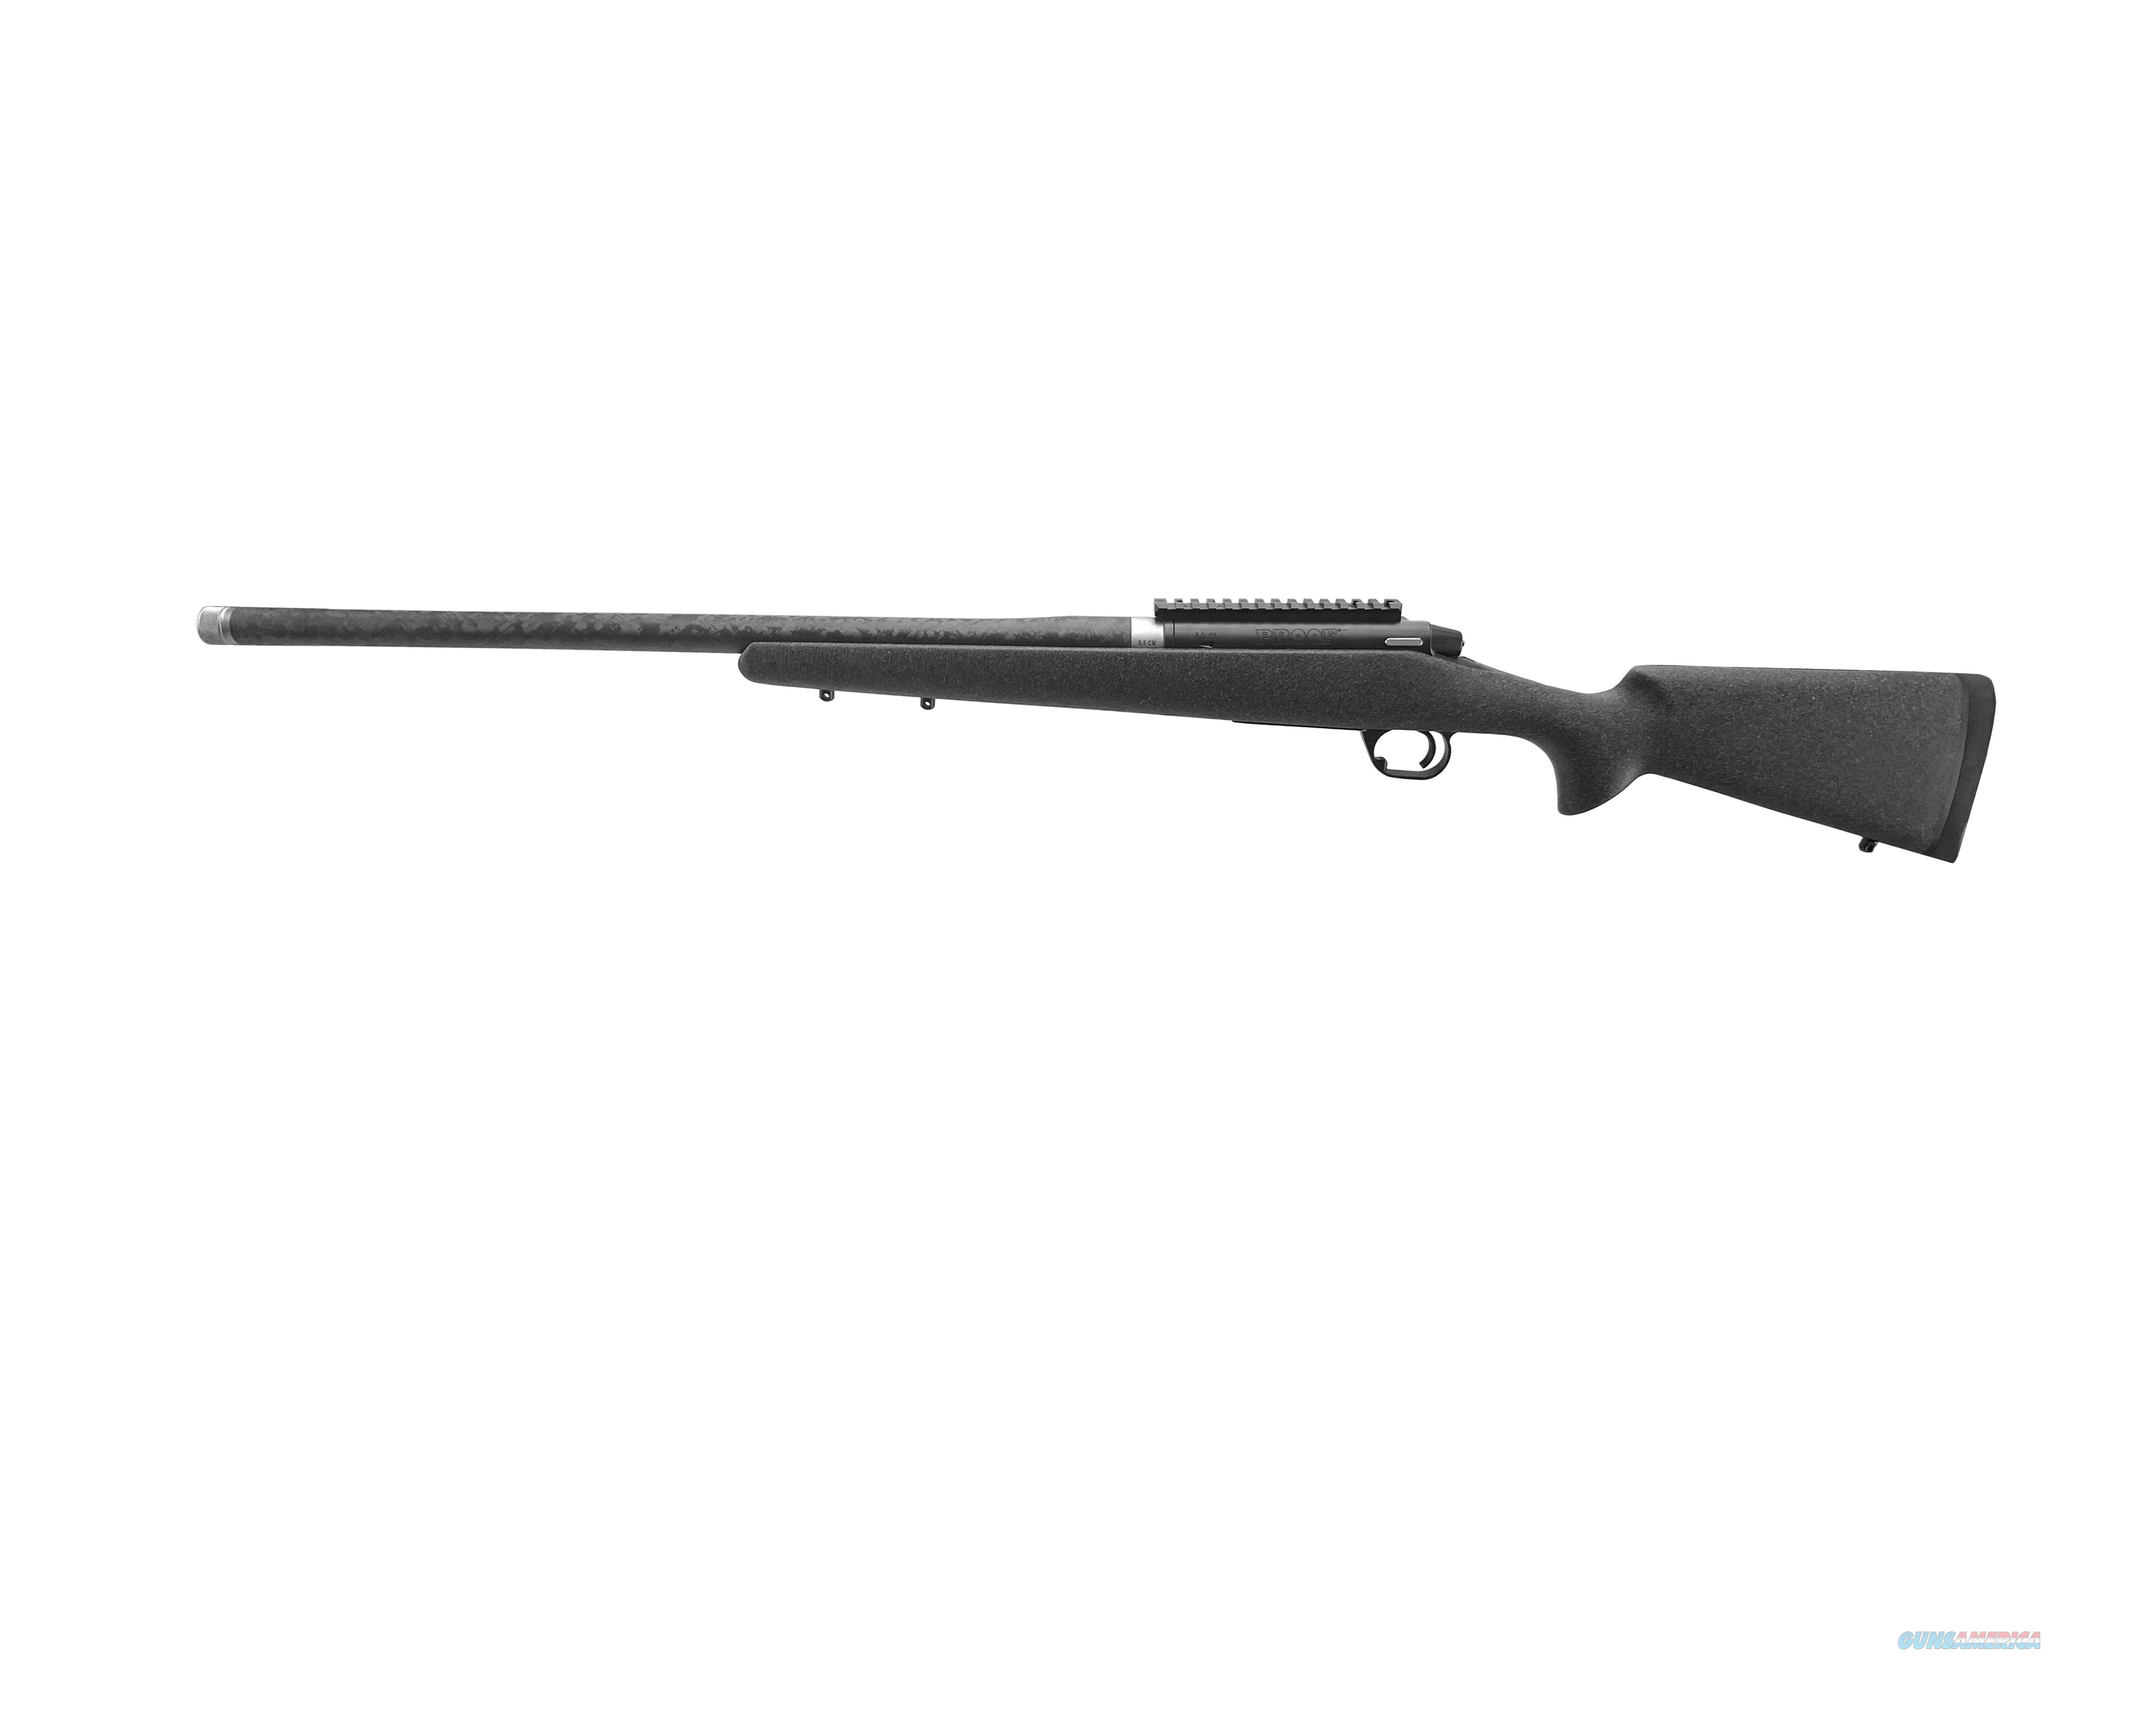 New Model - Proof Research Elevation Rifle Carbon Fiber 6.5 CM and .308 WIN  Guns > Rifles > PQ Misc Rifles